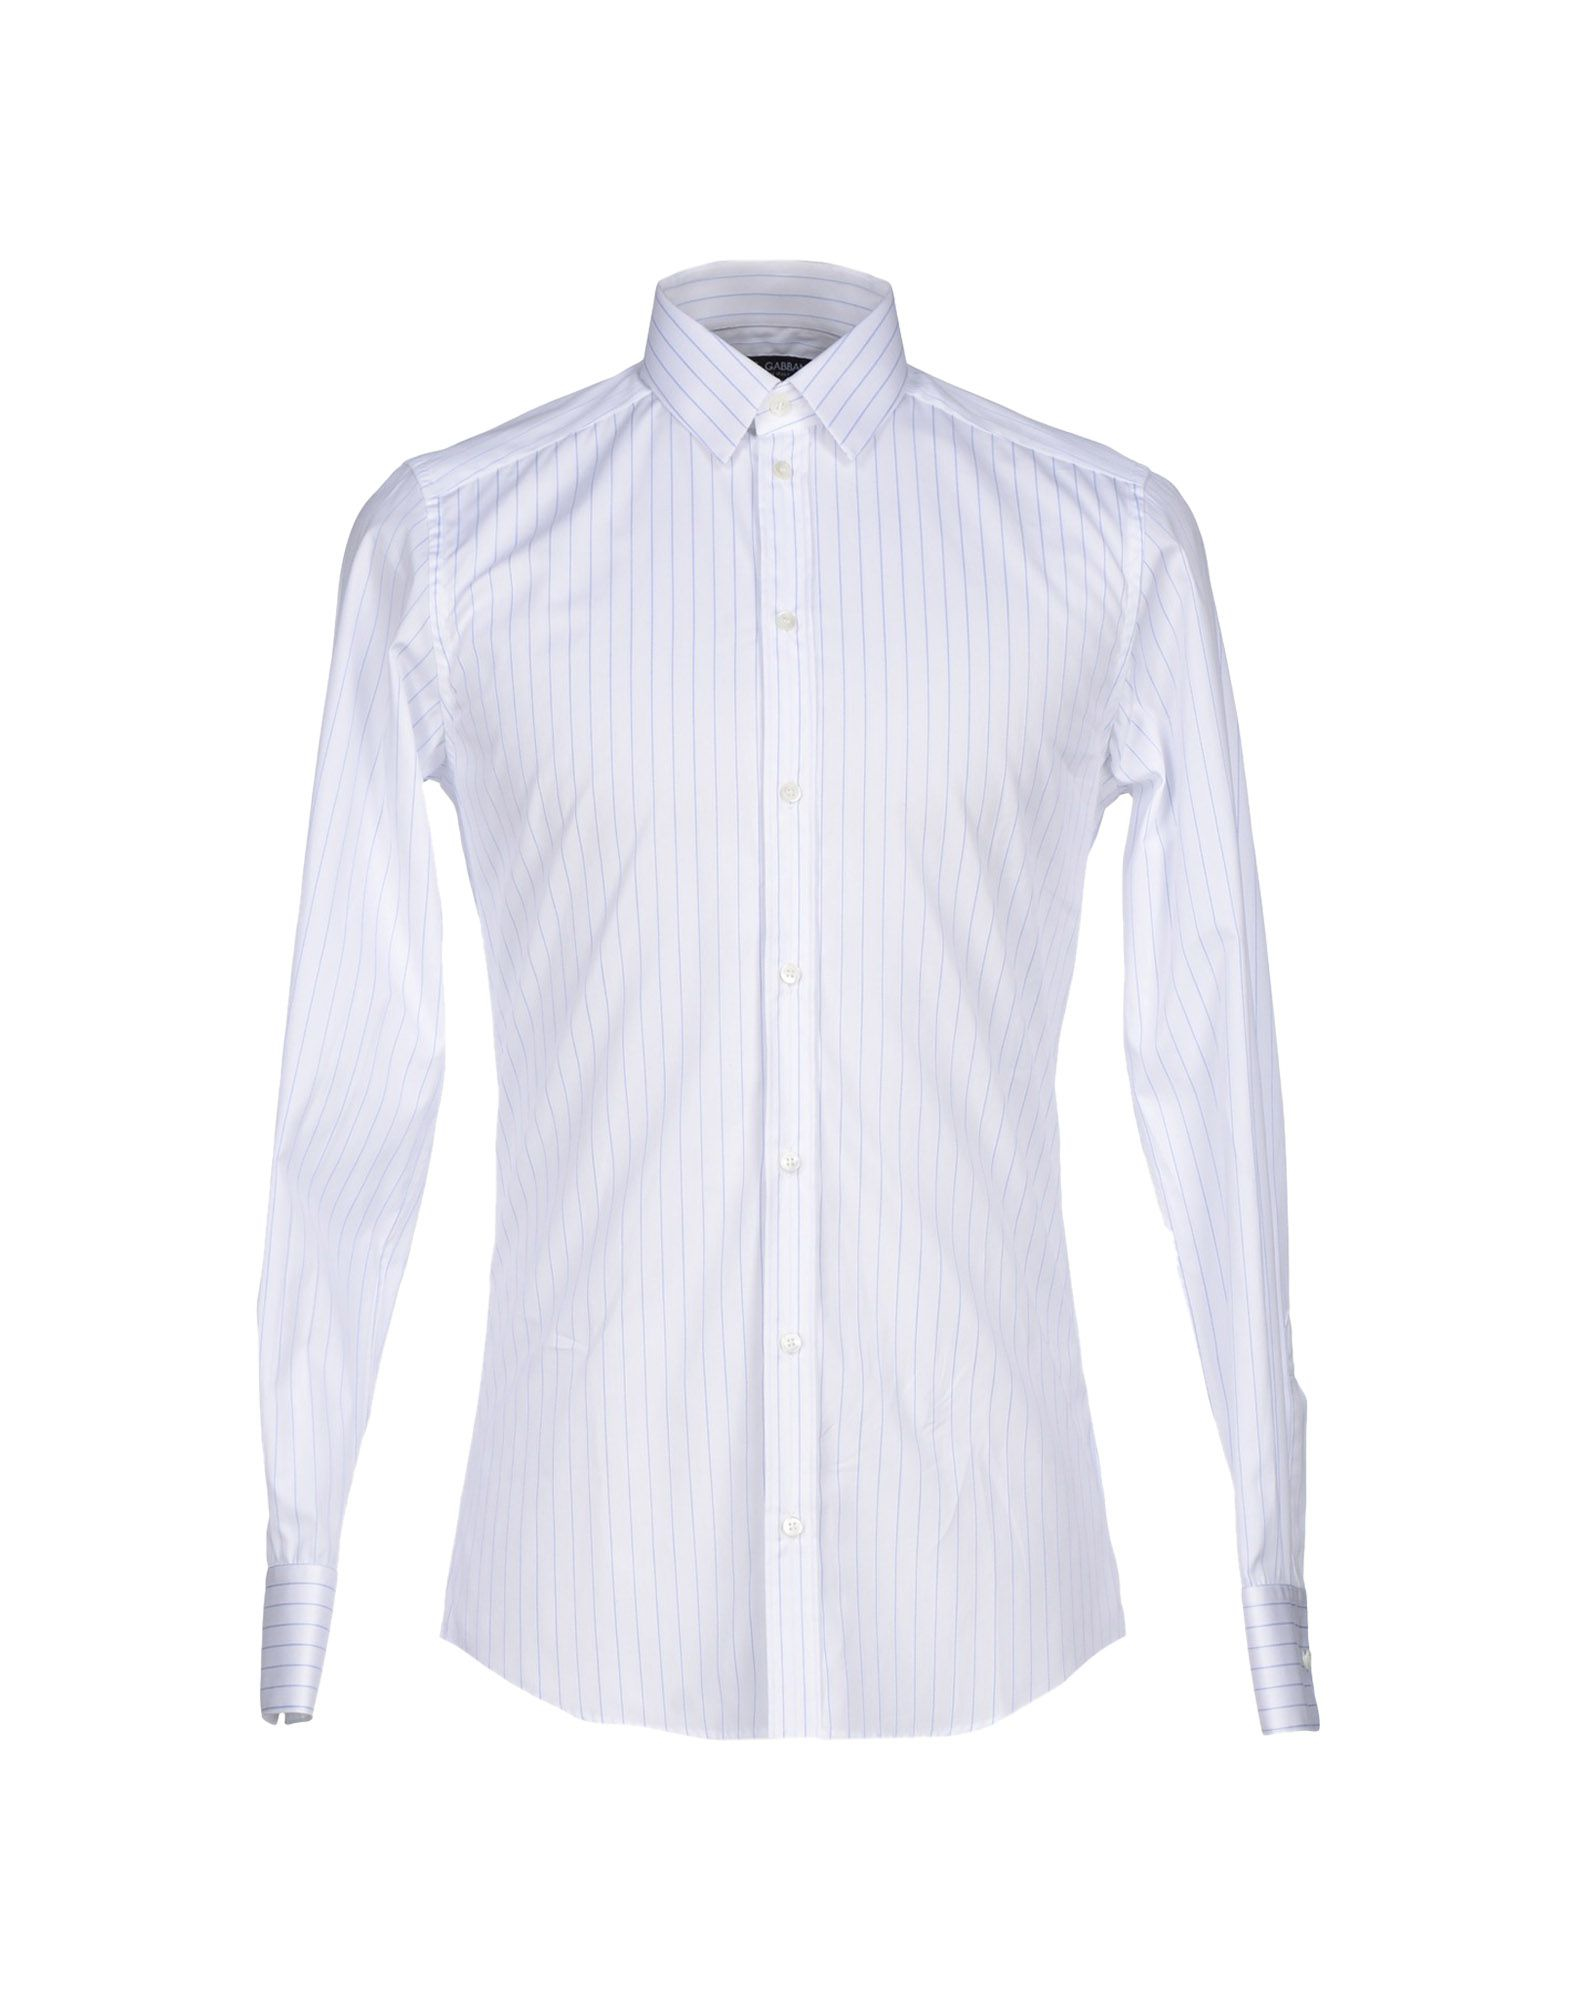 Lyst dolce gabbana shirt in white for men for Stafford white short sleeve dress shirts